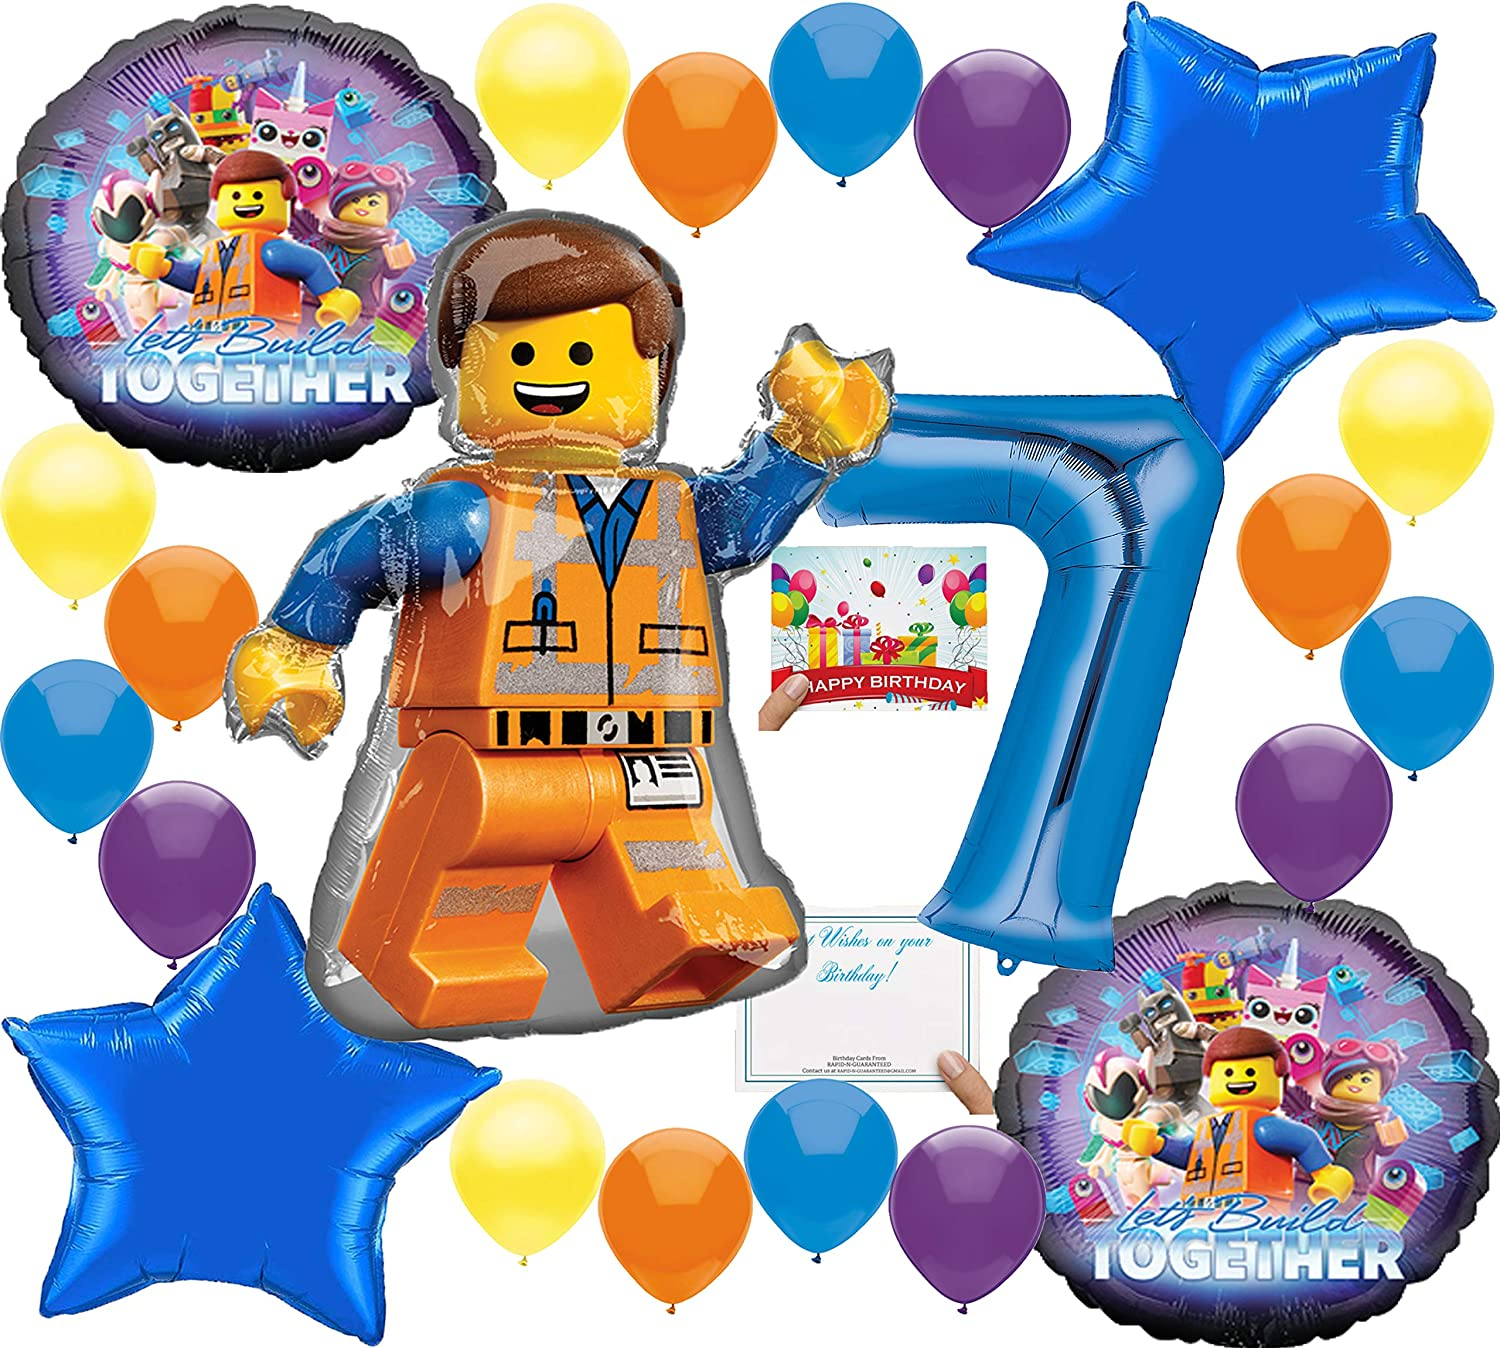 Lego Movie 2 Deluxe Balloon Decoration Bundle for (7th Birthday)